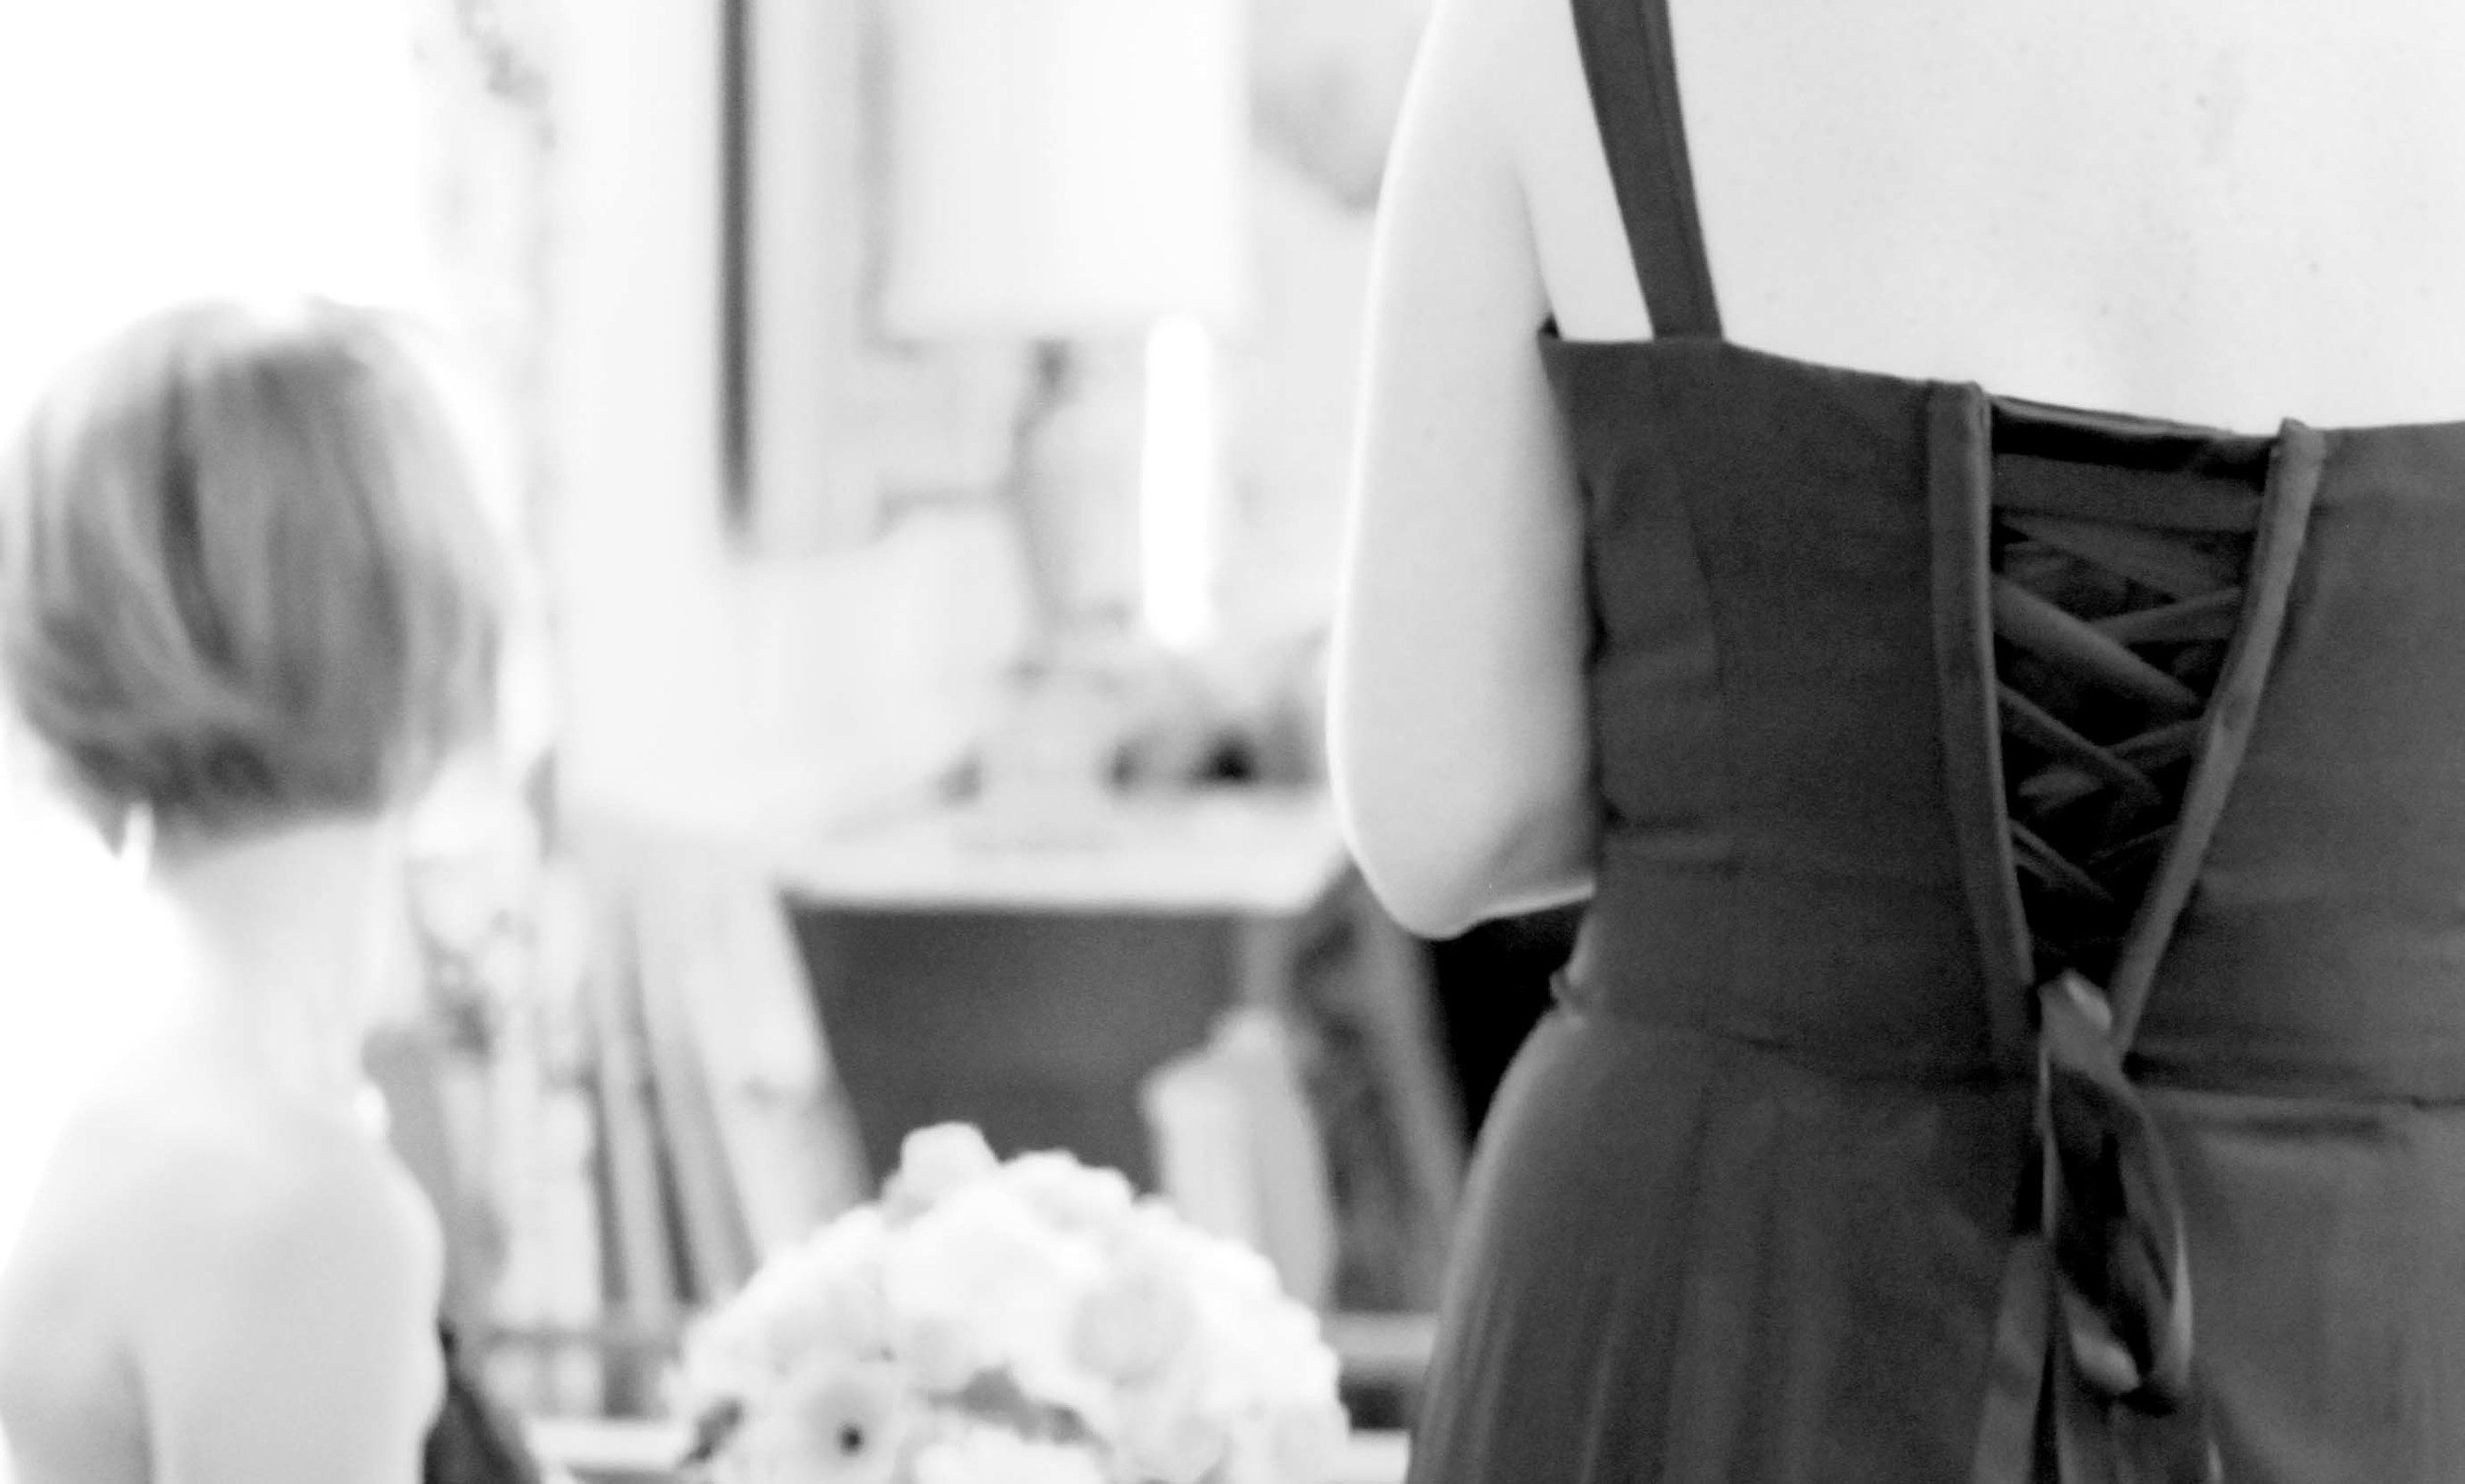 Our rapid corset back allowed sister to confidently enjoy the wedding day!